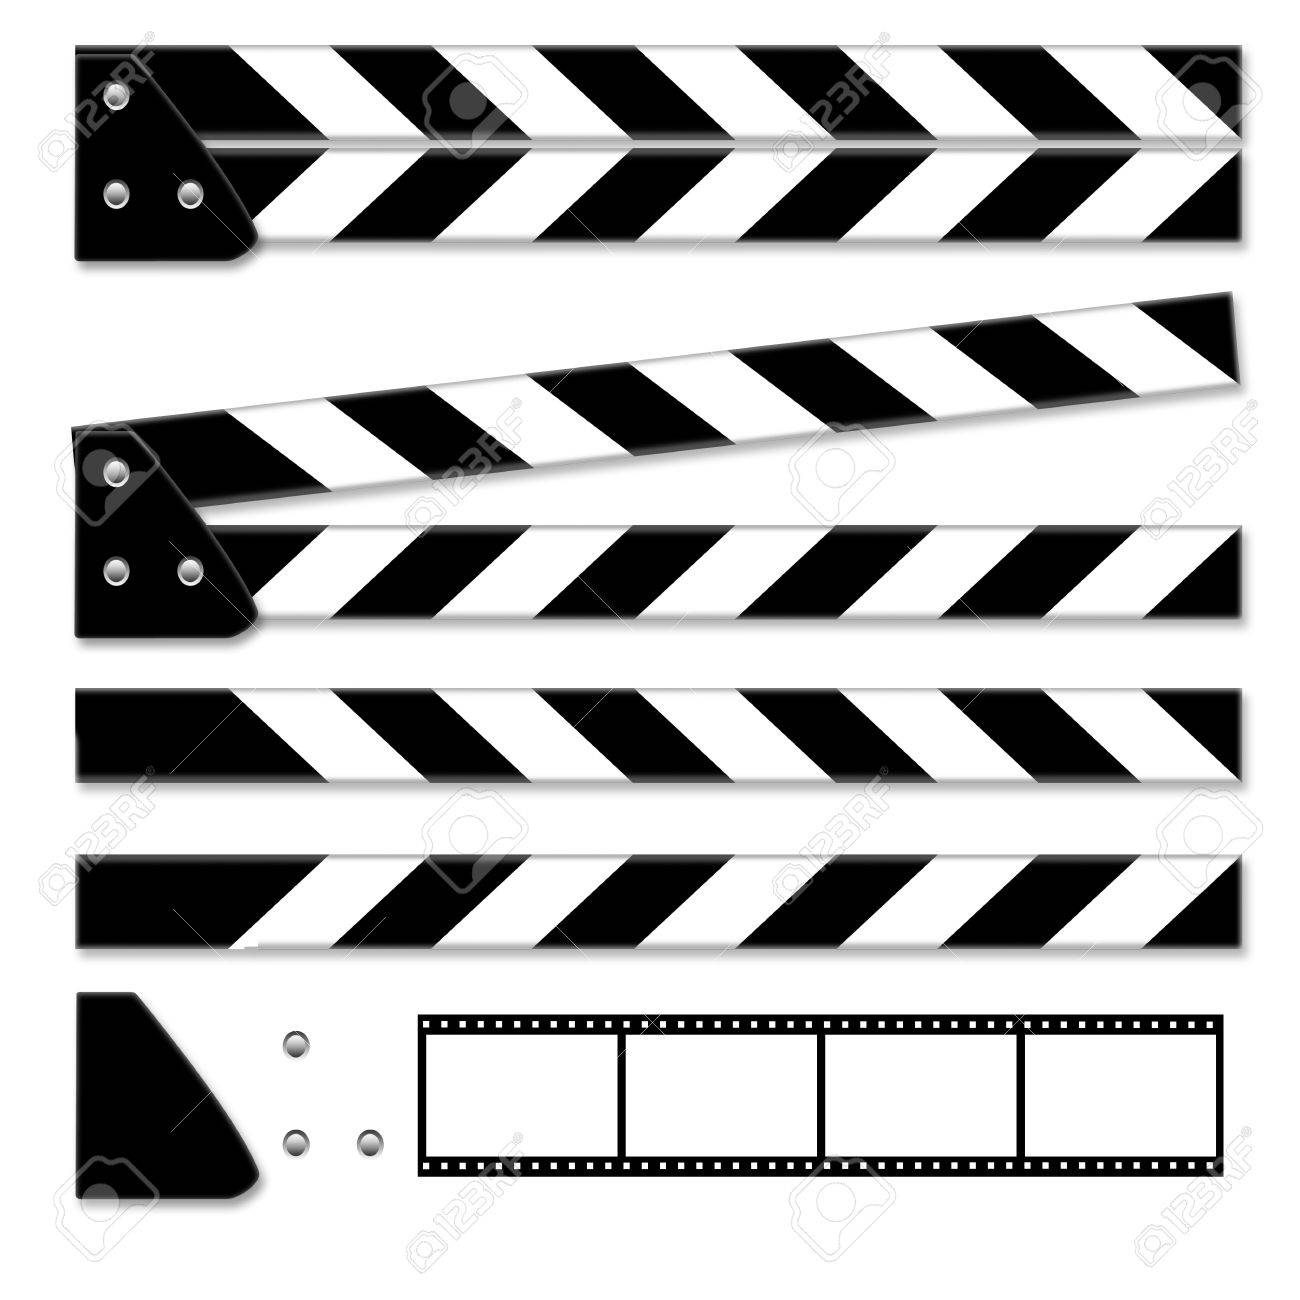 Parts of clapper board isolated on white background - 20036723